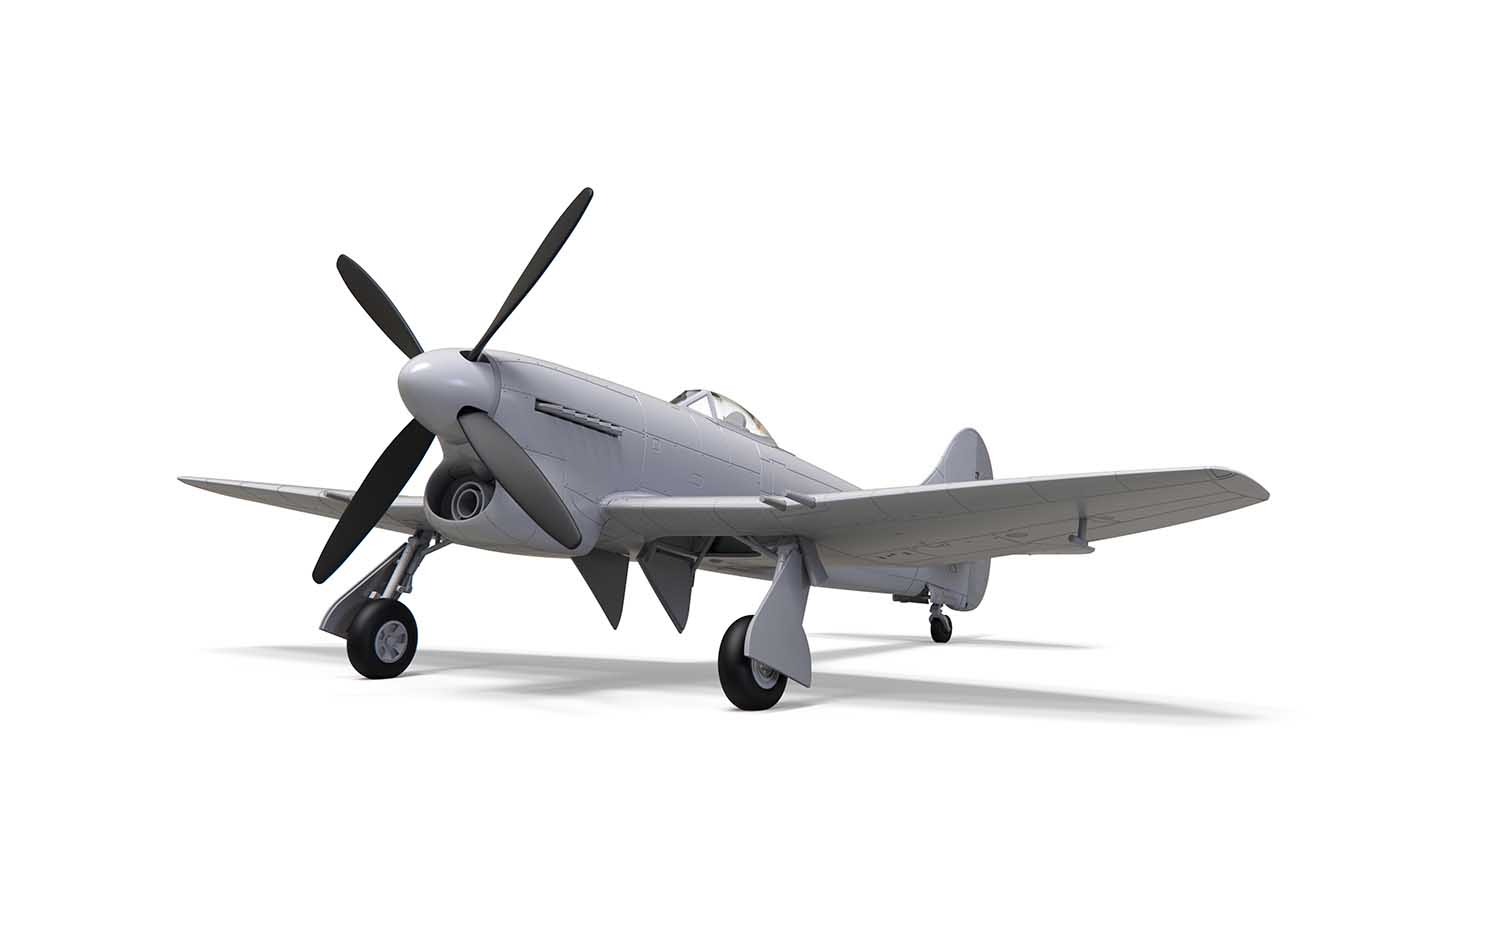 [SPECIAL HOBBY] HAWKER TEMPEST Mk II A02109_1_hawker-tempest_render